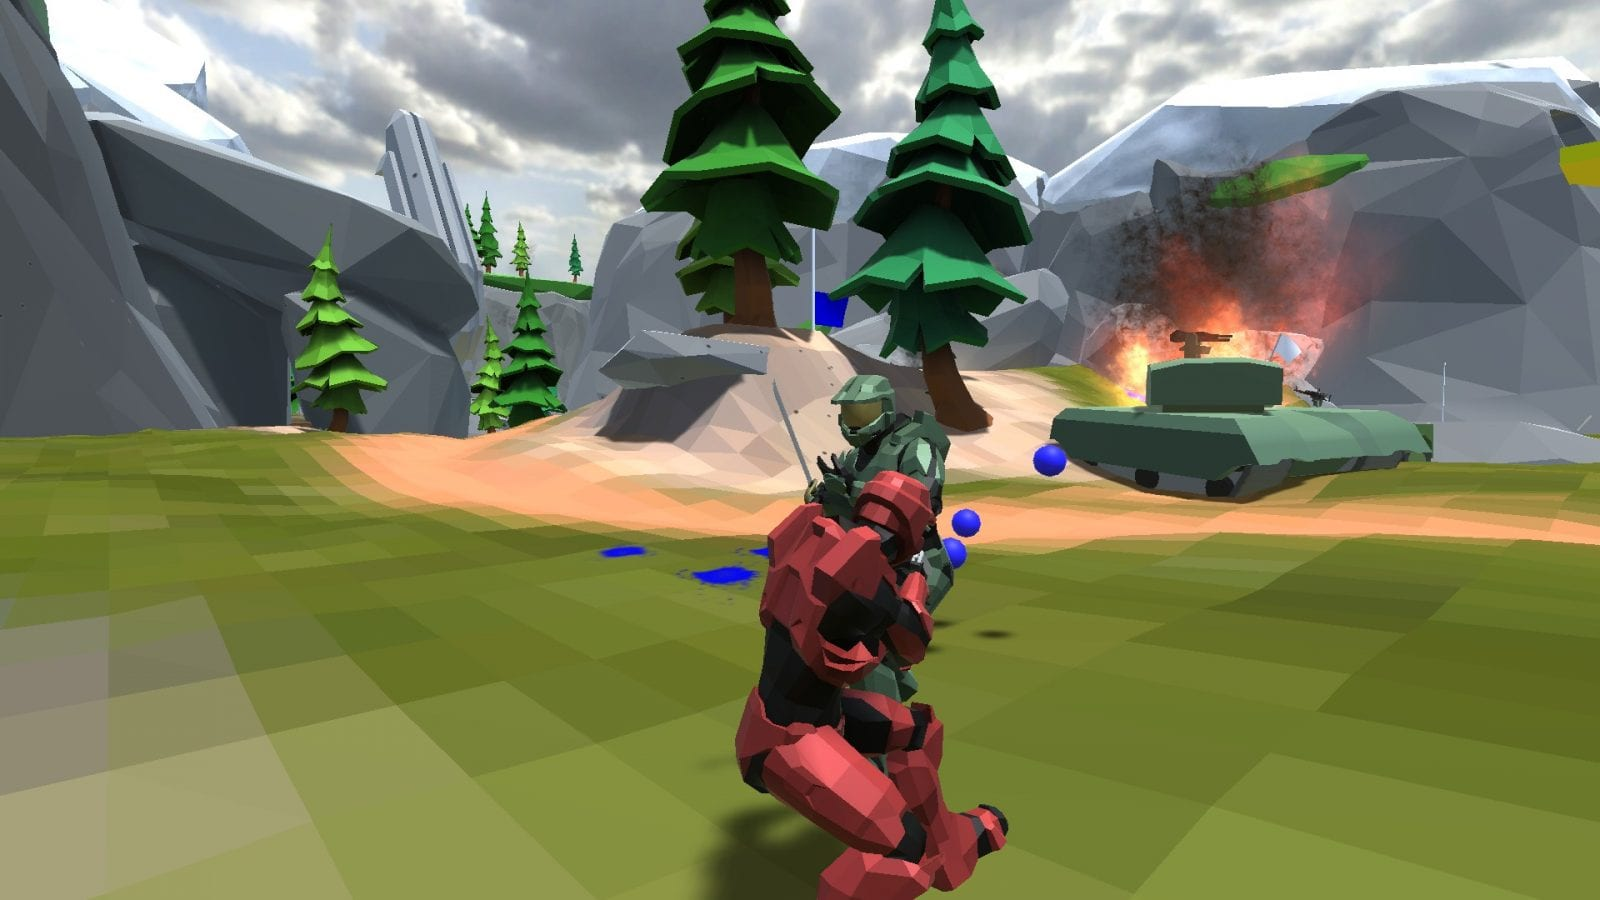 Halo Spartan Mod for Ravenfield